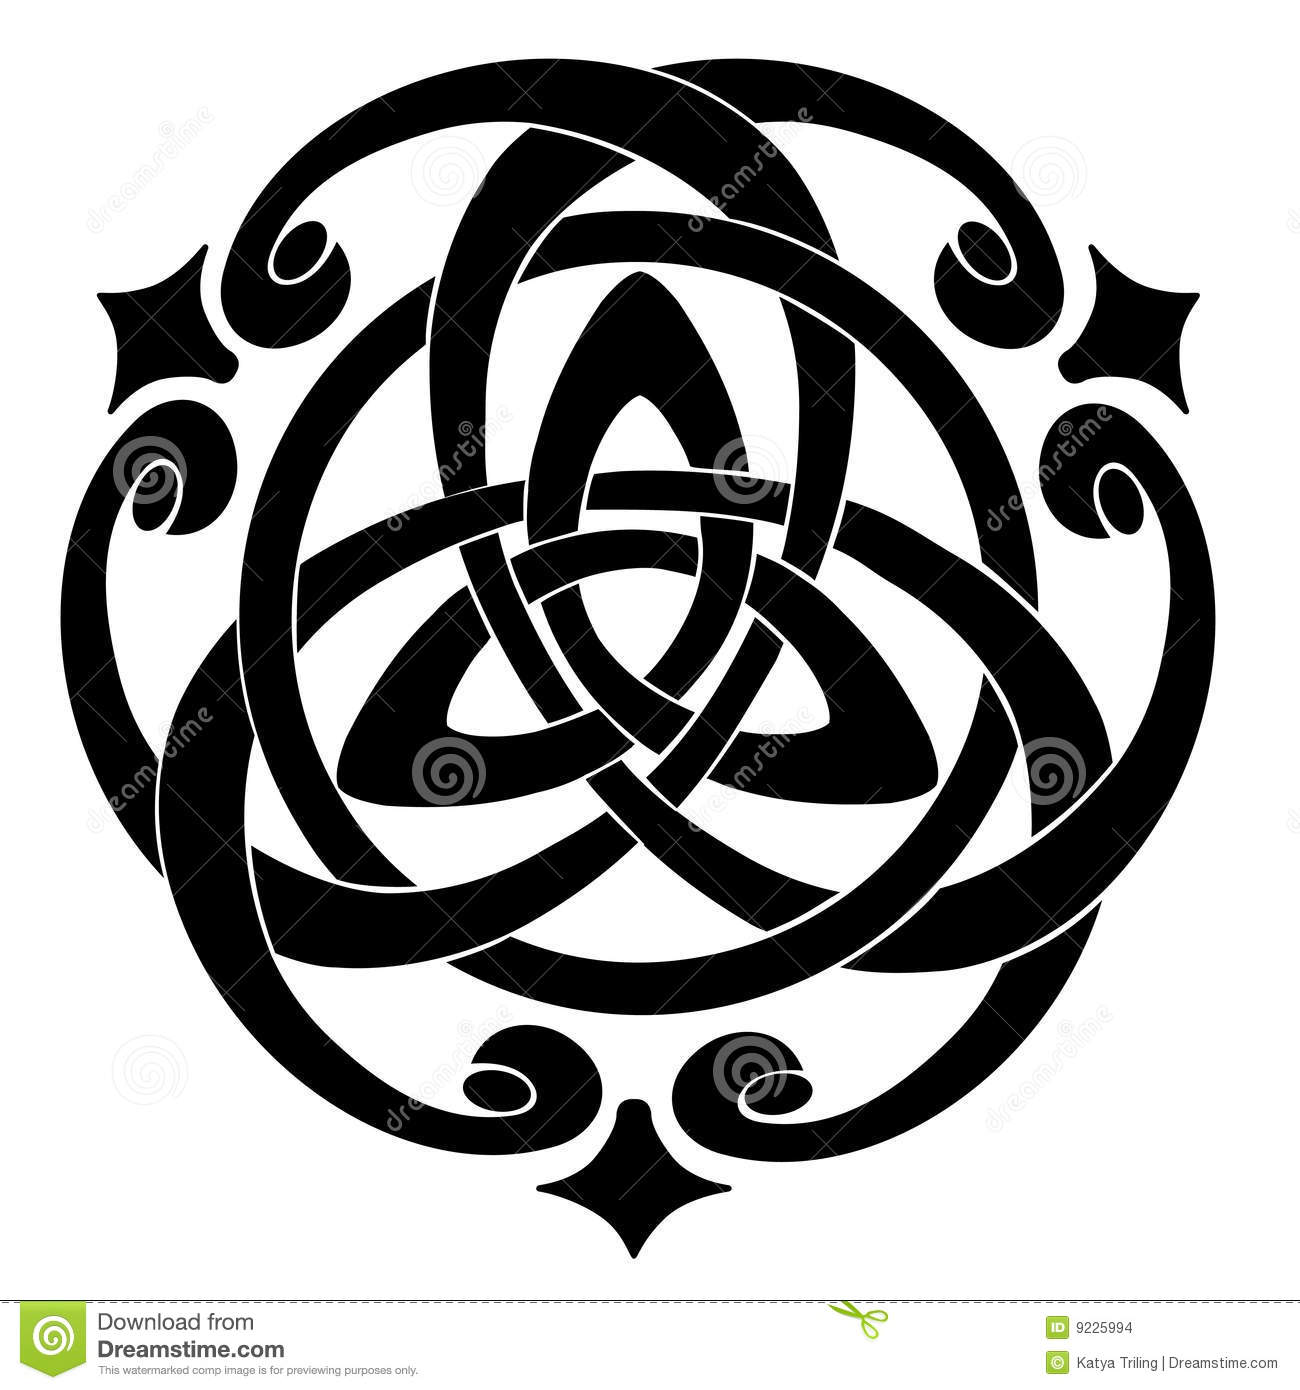 Celtic Knot Motif Stock Vector Illustration Of Repetition 9225994